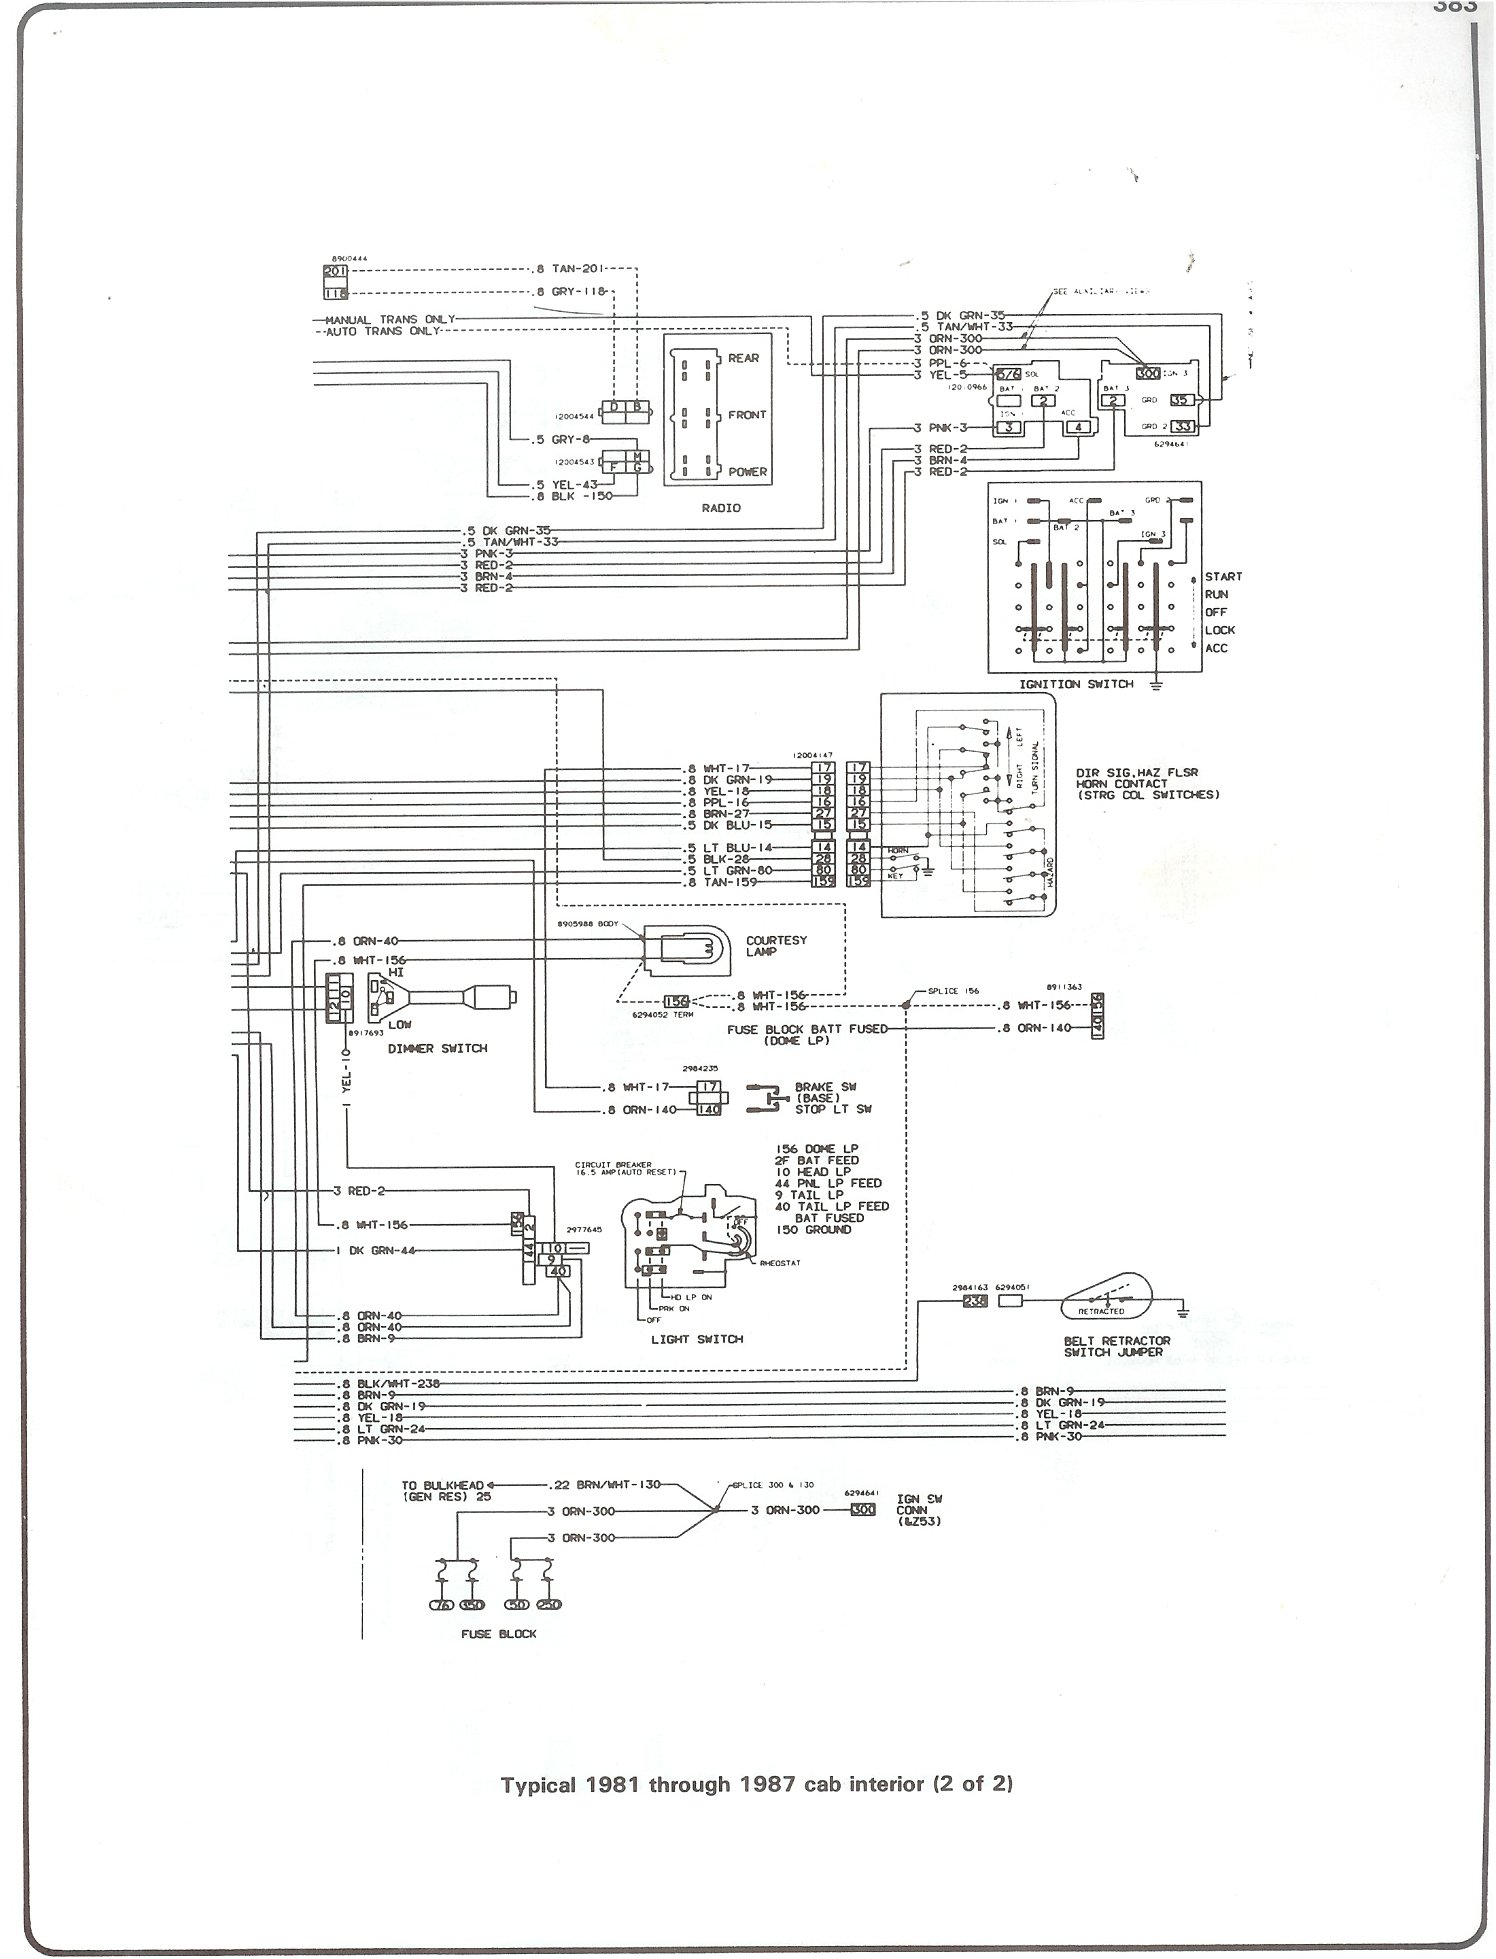 complete 73 87 wiring diagrams rh forum 73 87chevytrucks com 1987 gmc sierra fuel pump wiring diagram 1987 gmc sierra classic wiring diagram